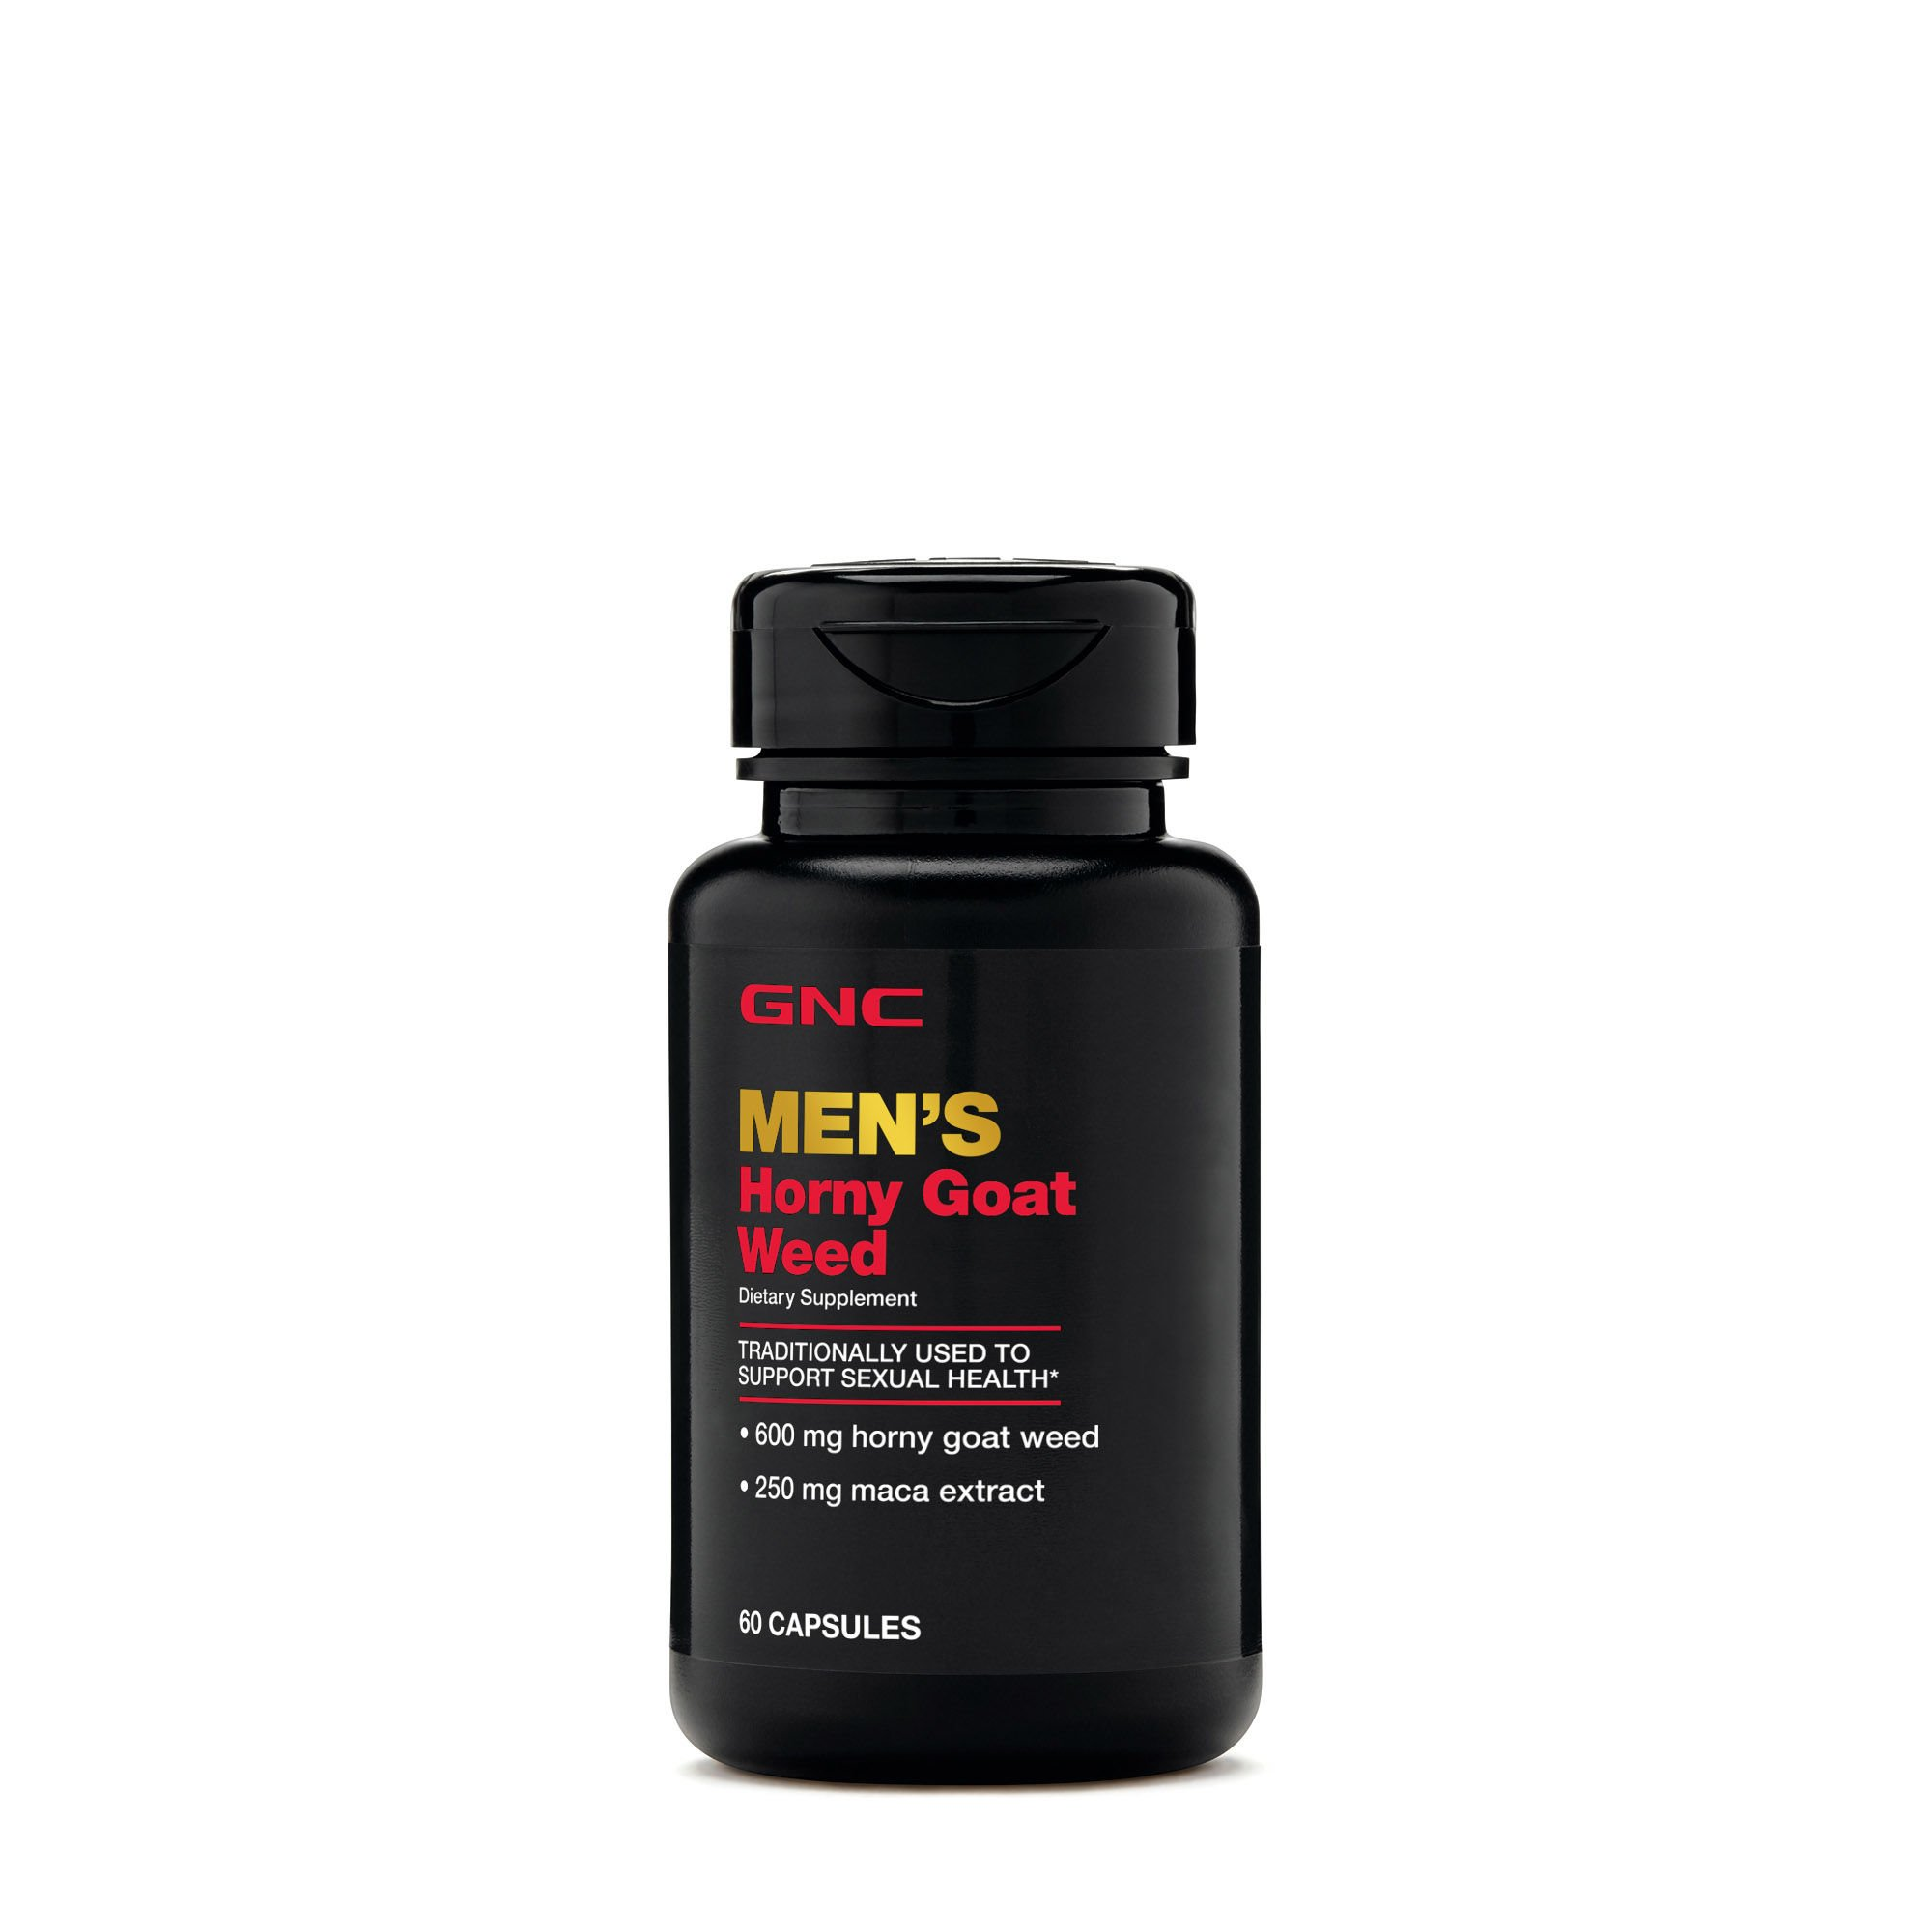 GNC Horny Goat Weed - 60 Capsules